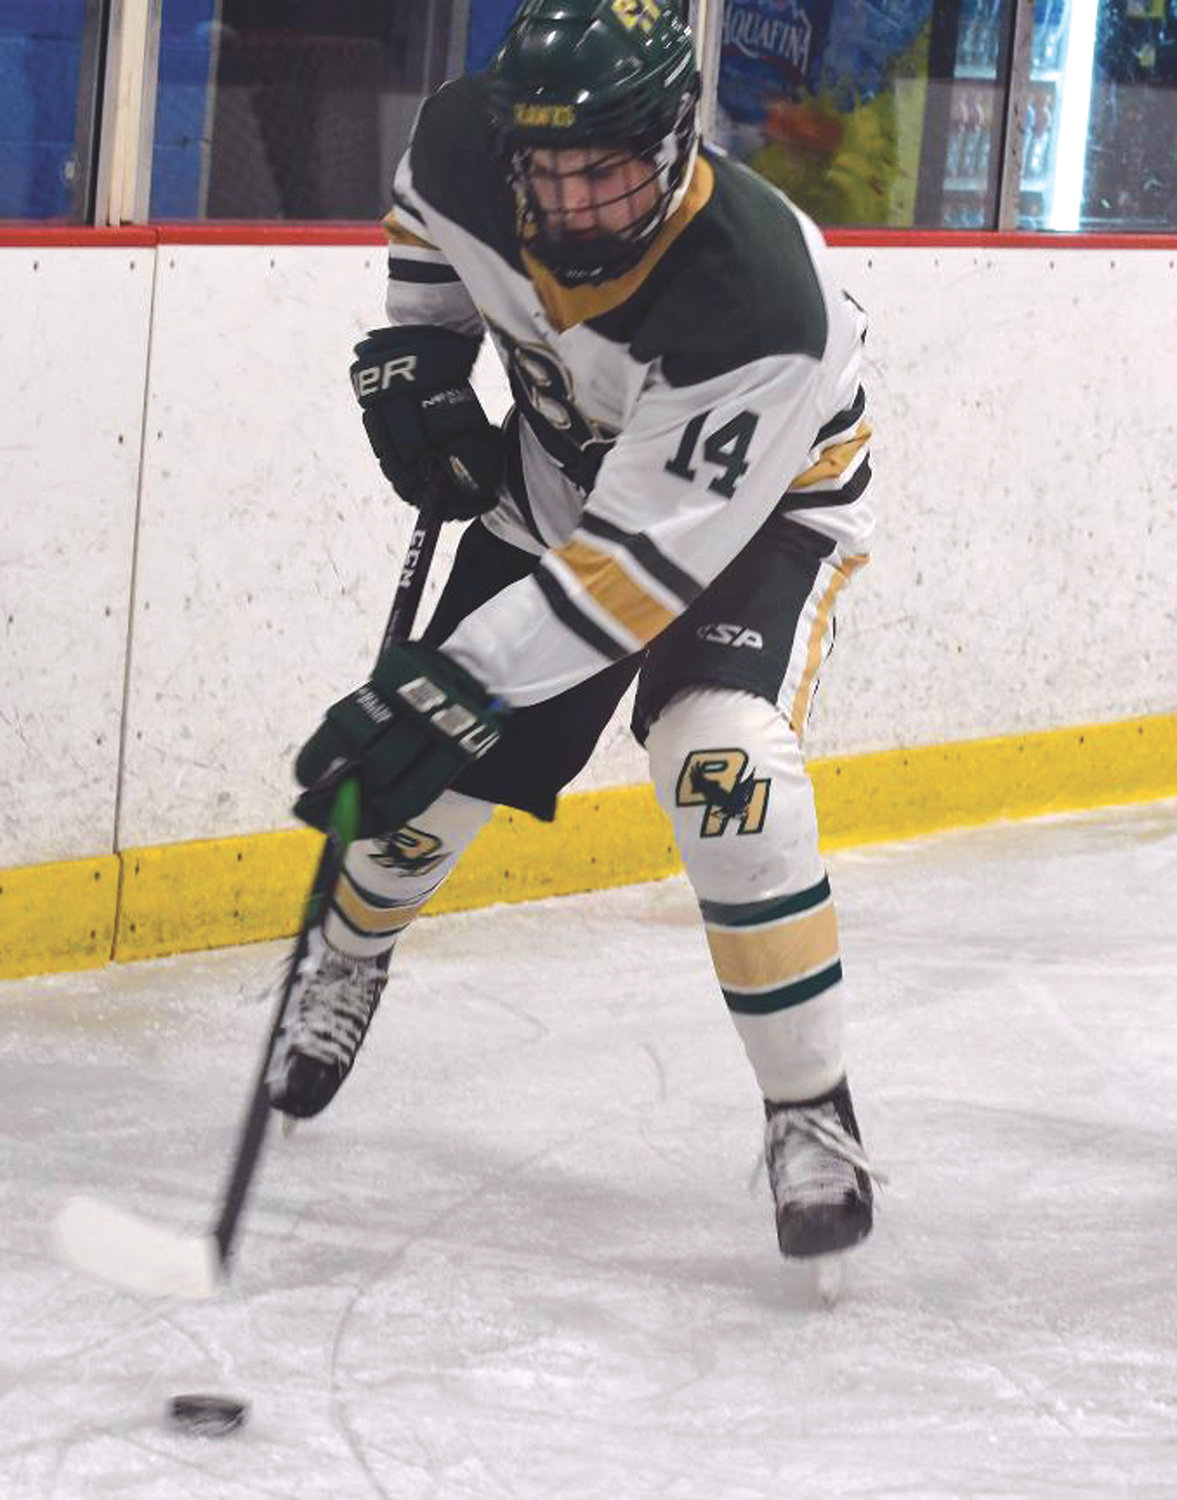 ALONG THE BOARDS: Bishop Hendricken's Matthew Moretti, who scored a pair of goals over the weekend.